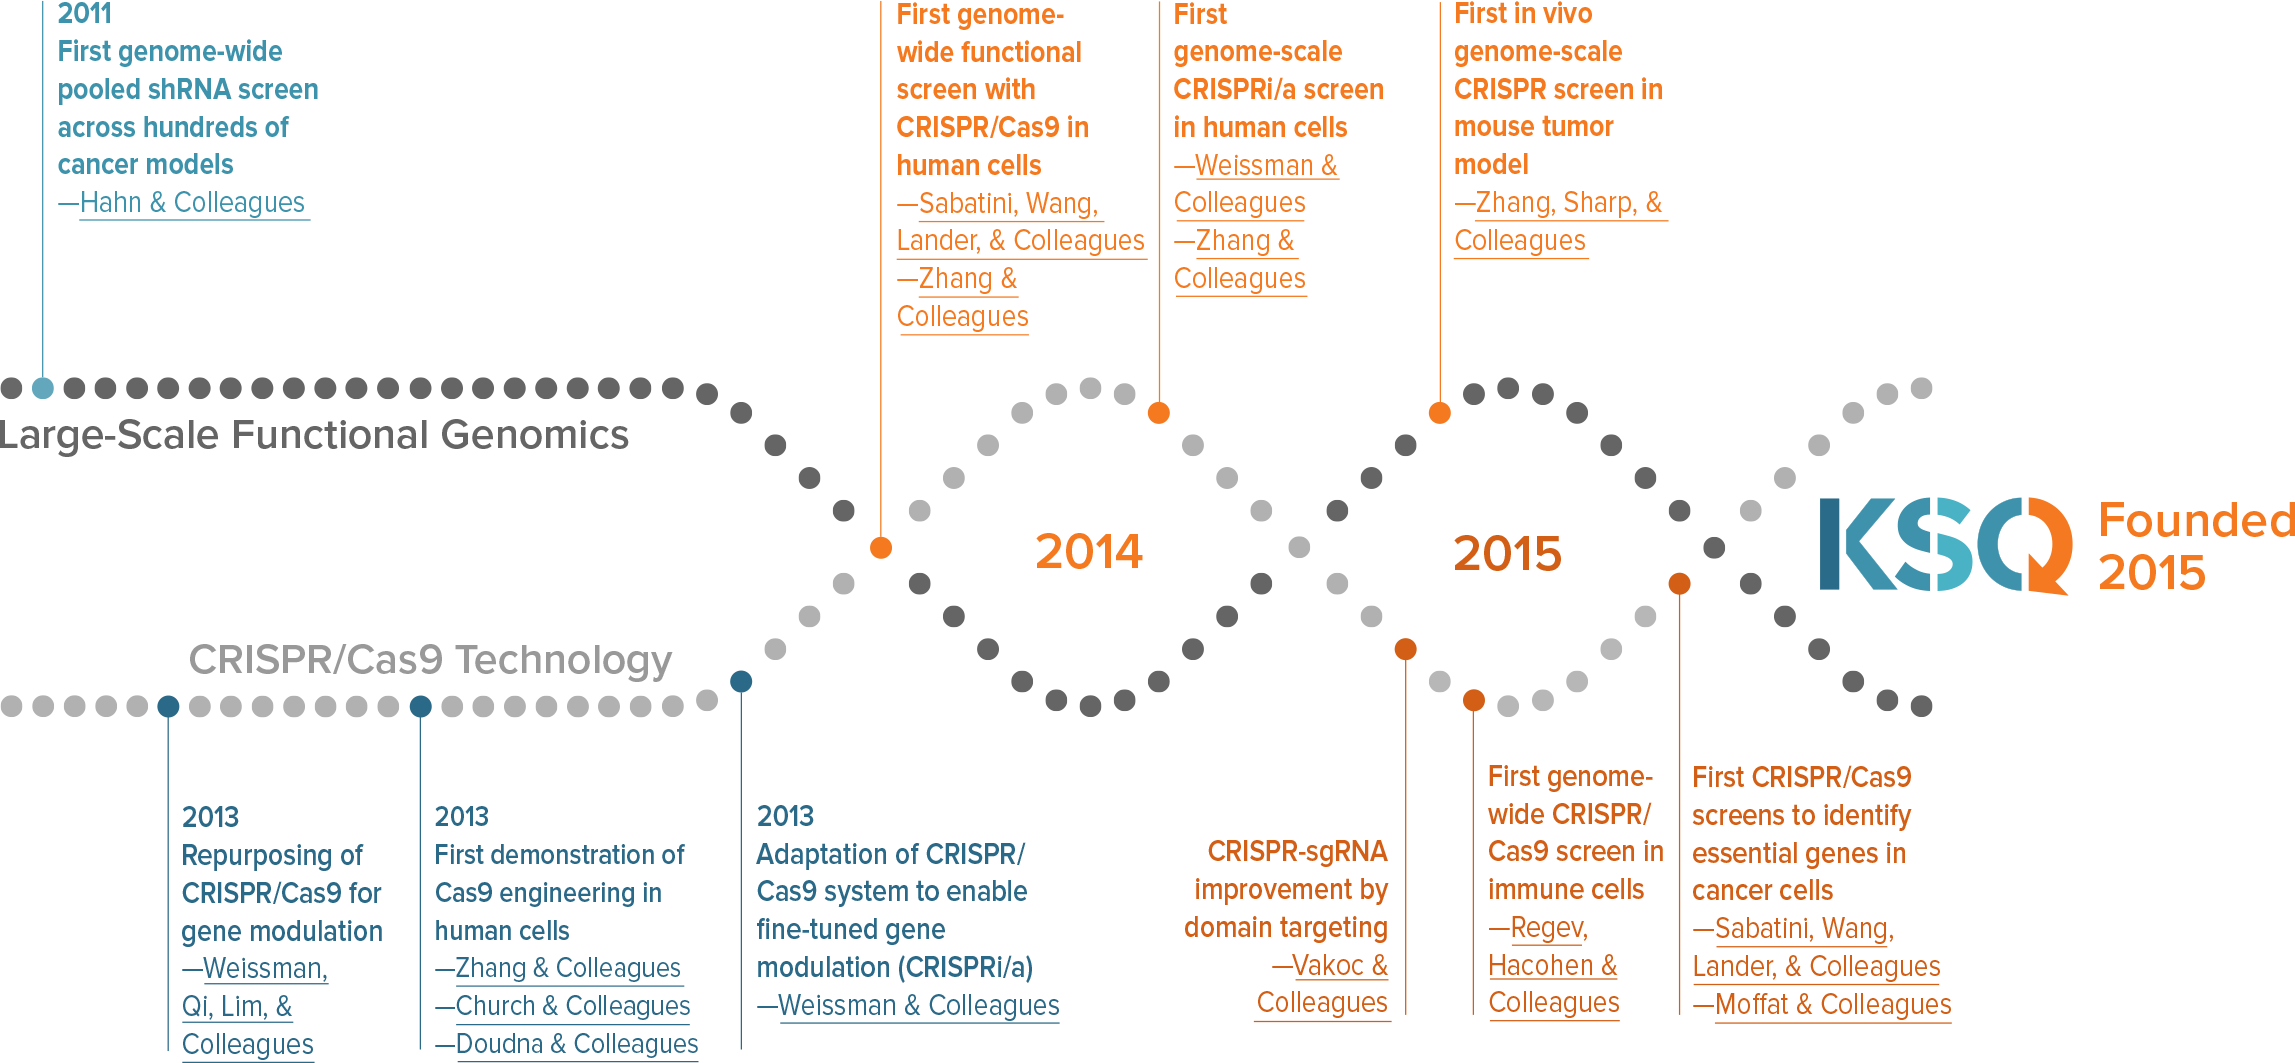 KSQ Therapeutics Timeline